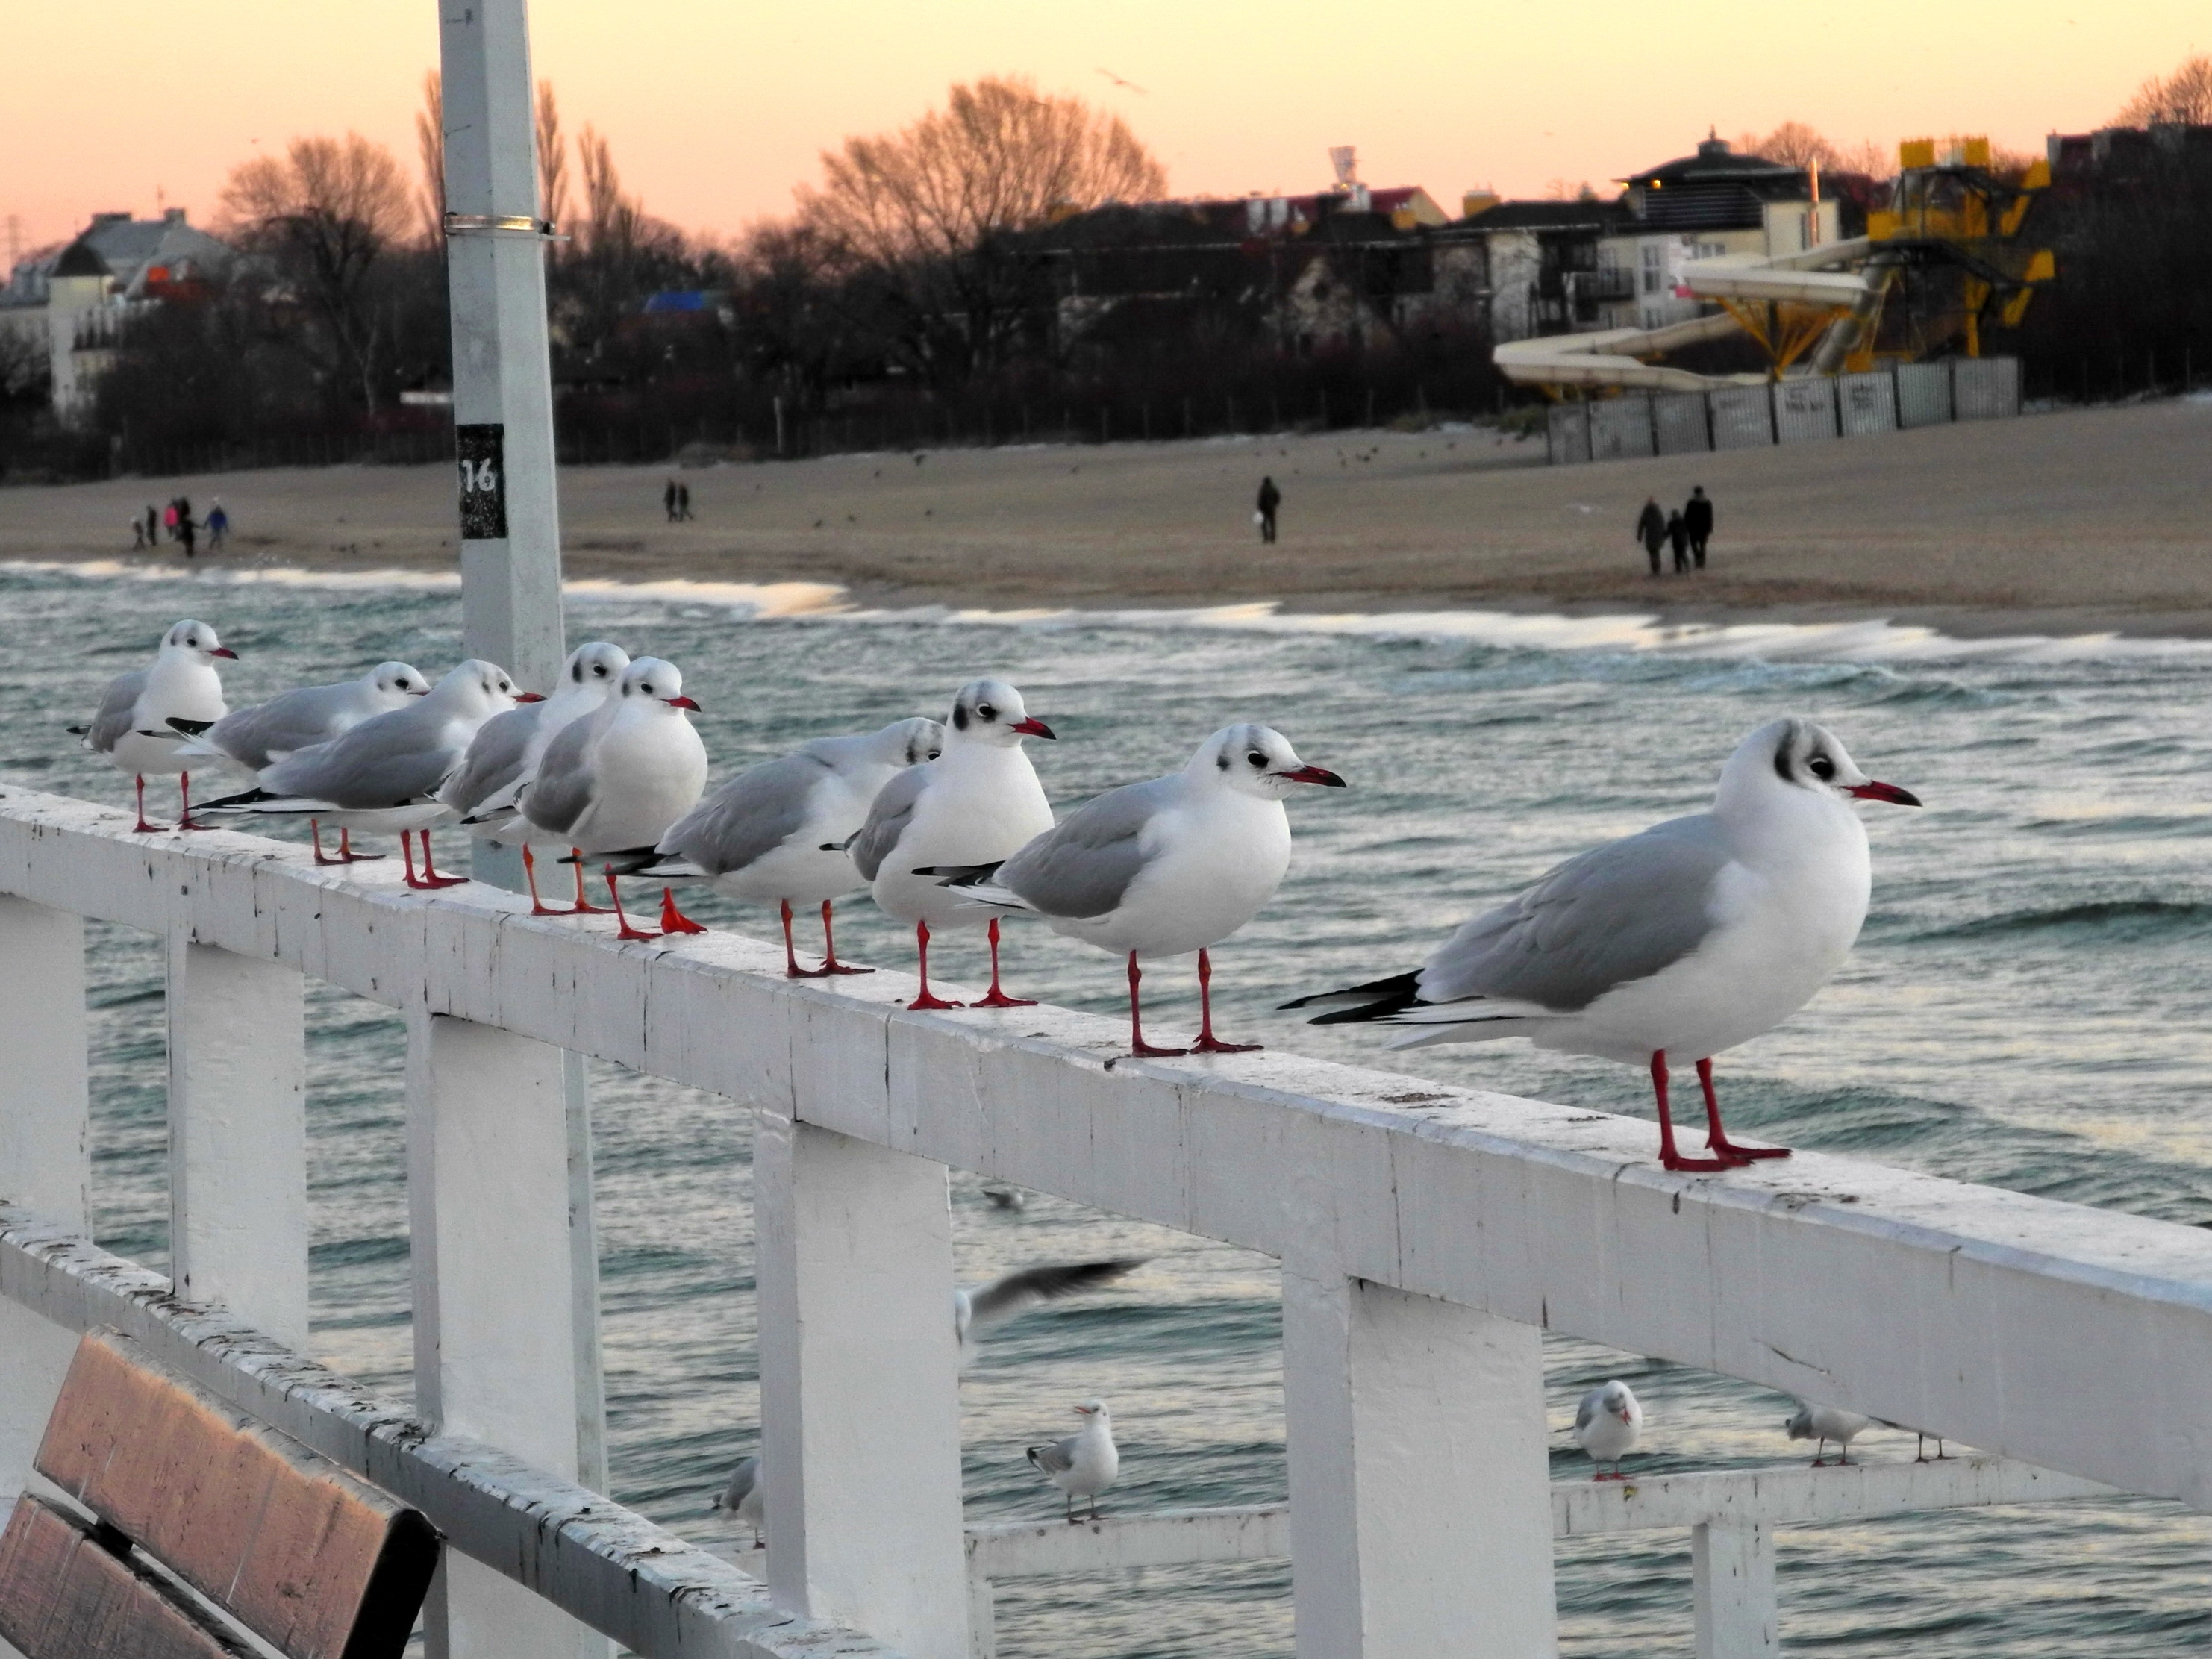 151937 download wallpaper Animals, Seagulls, Bridge, Handrail screensavers and pictures for free